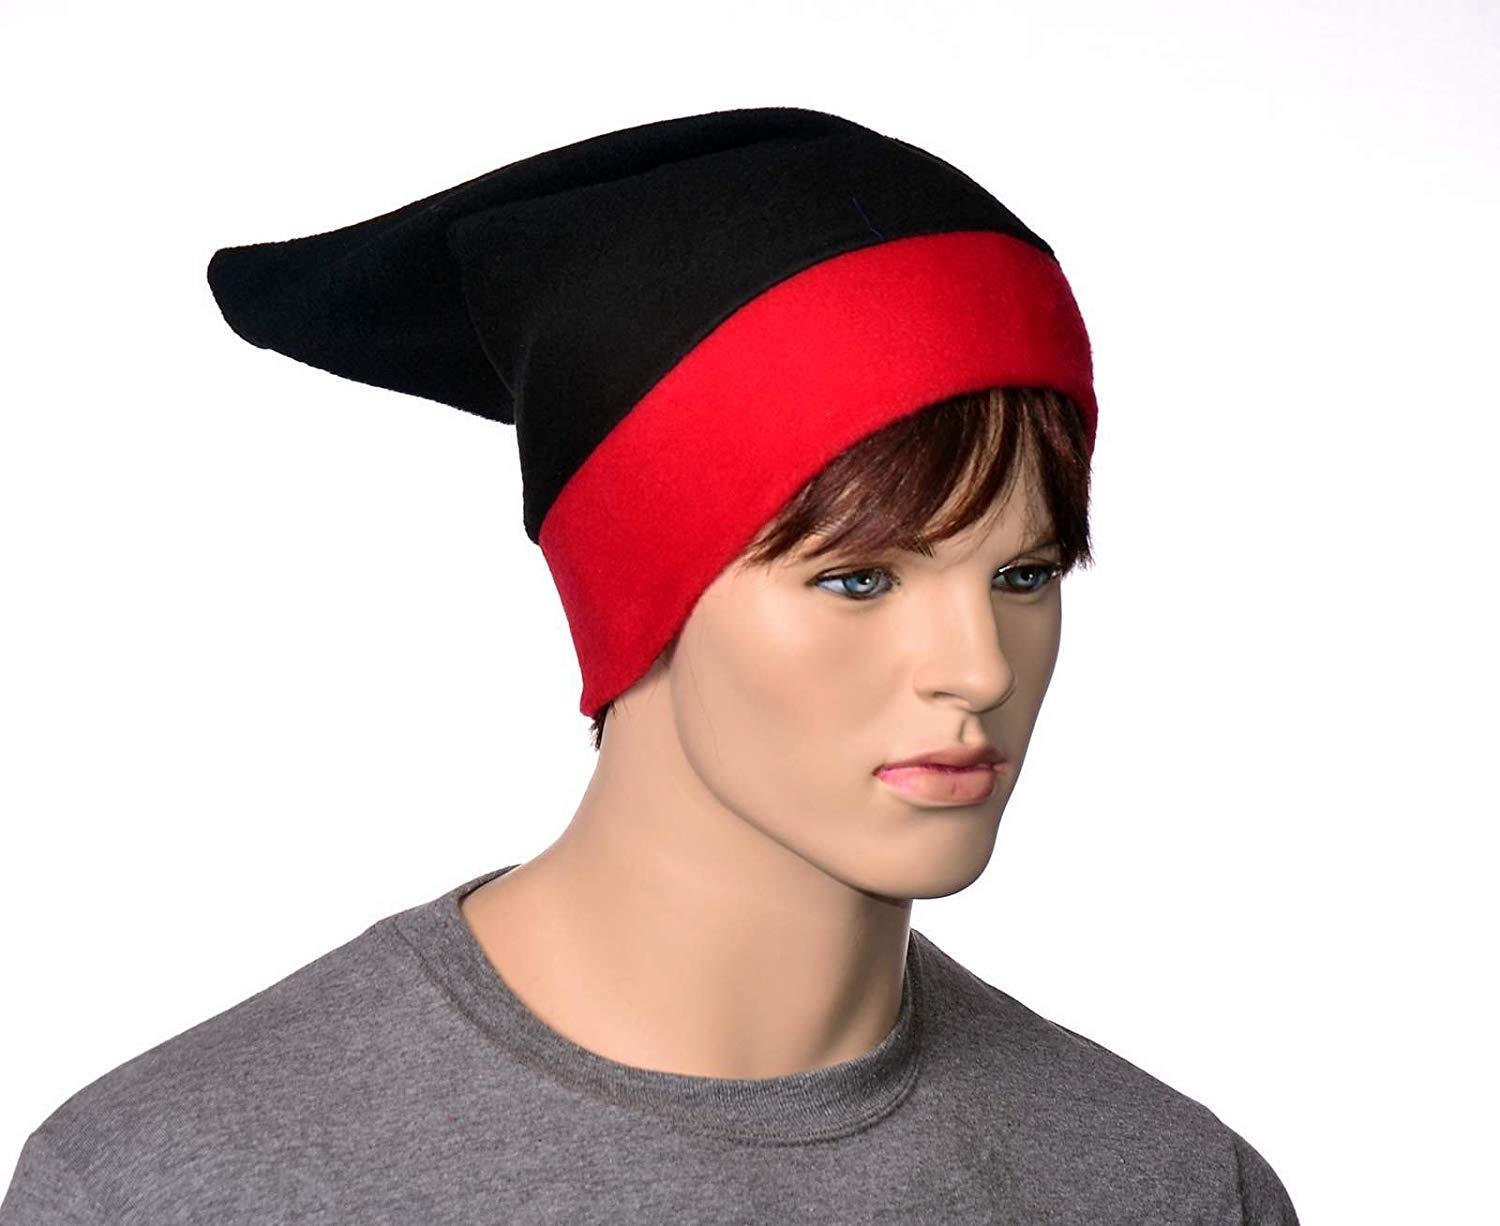 e402a58a626 Get Quotations · Elf Hat in Gothic Red and Black Pointed Fleece Beanie